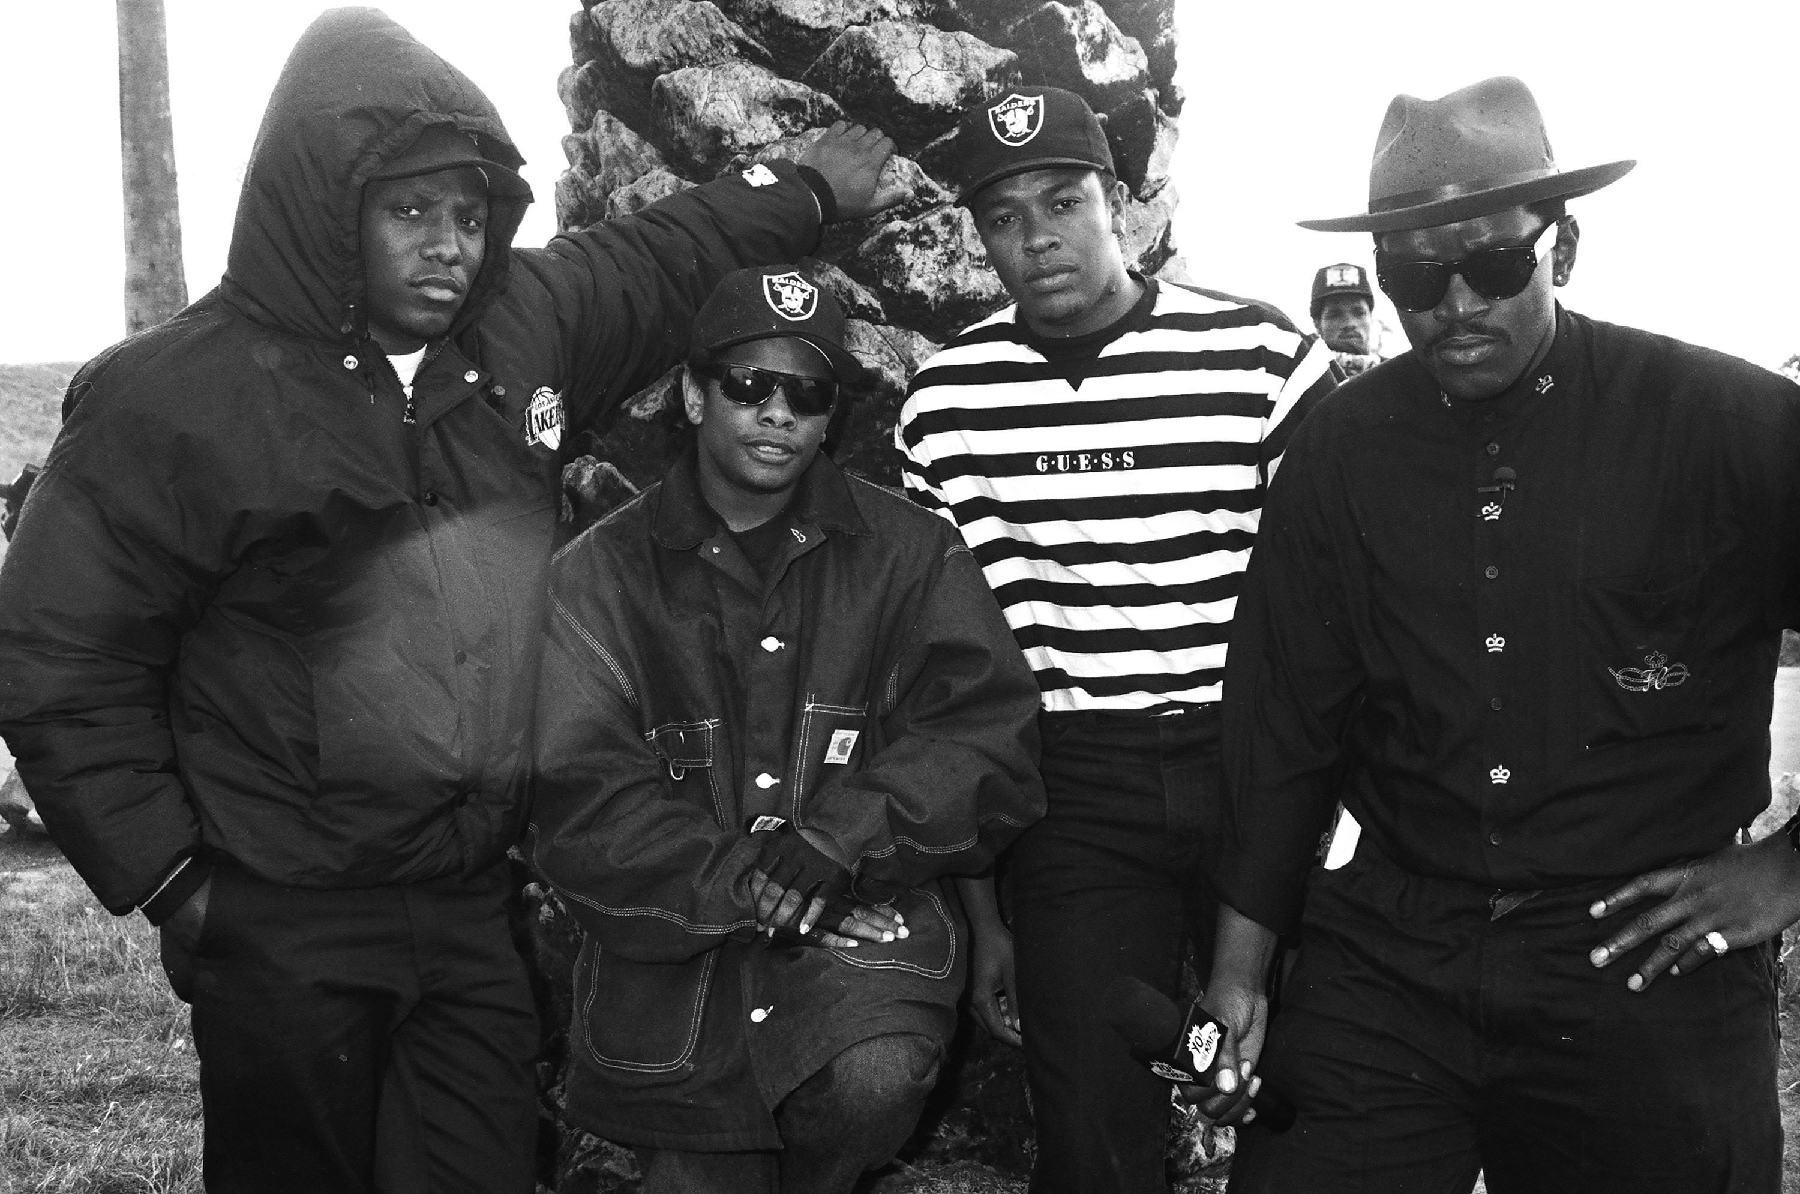 N.W.A Biopic Director Explains Casting Criteria